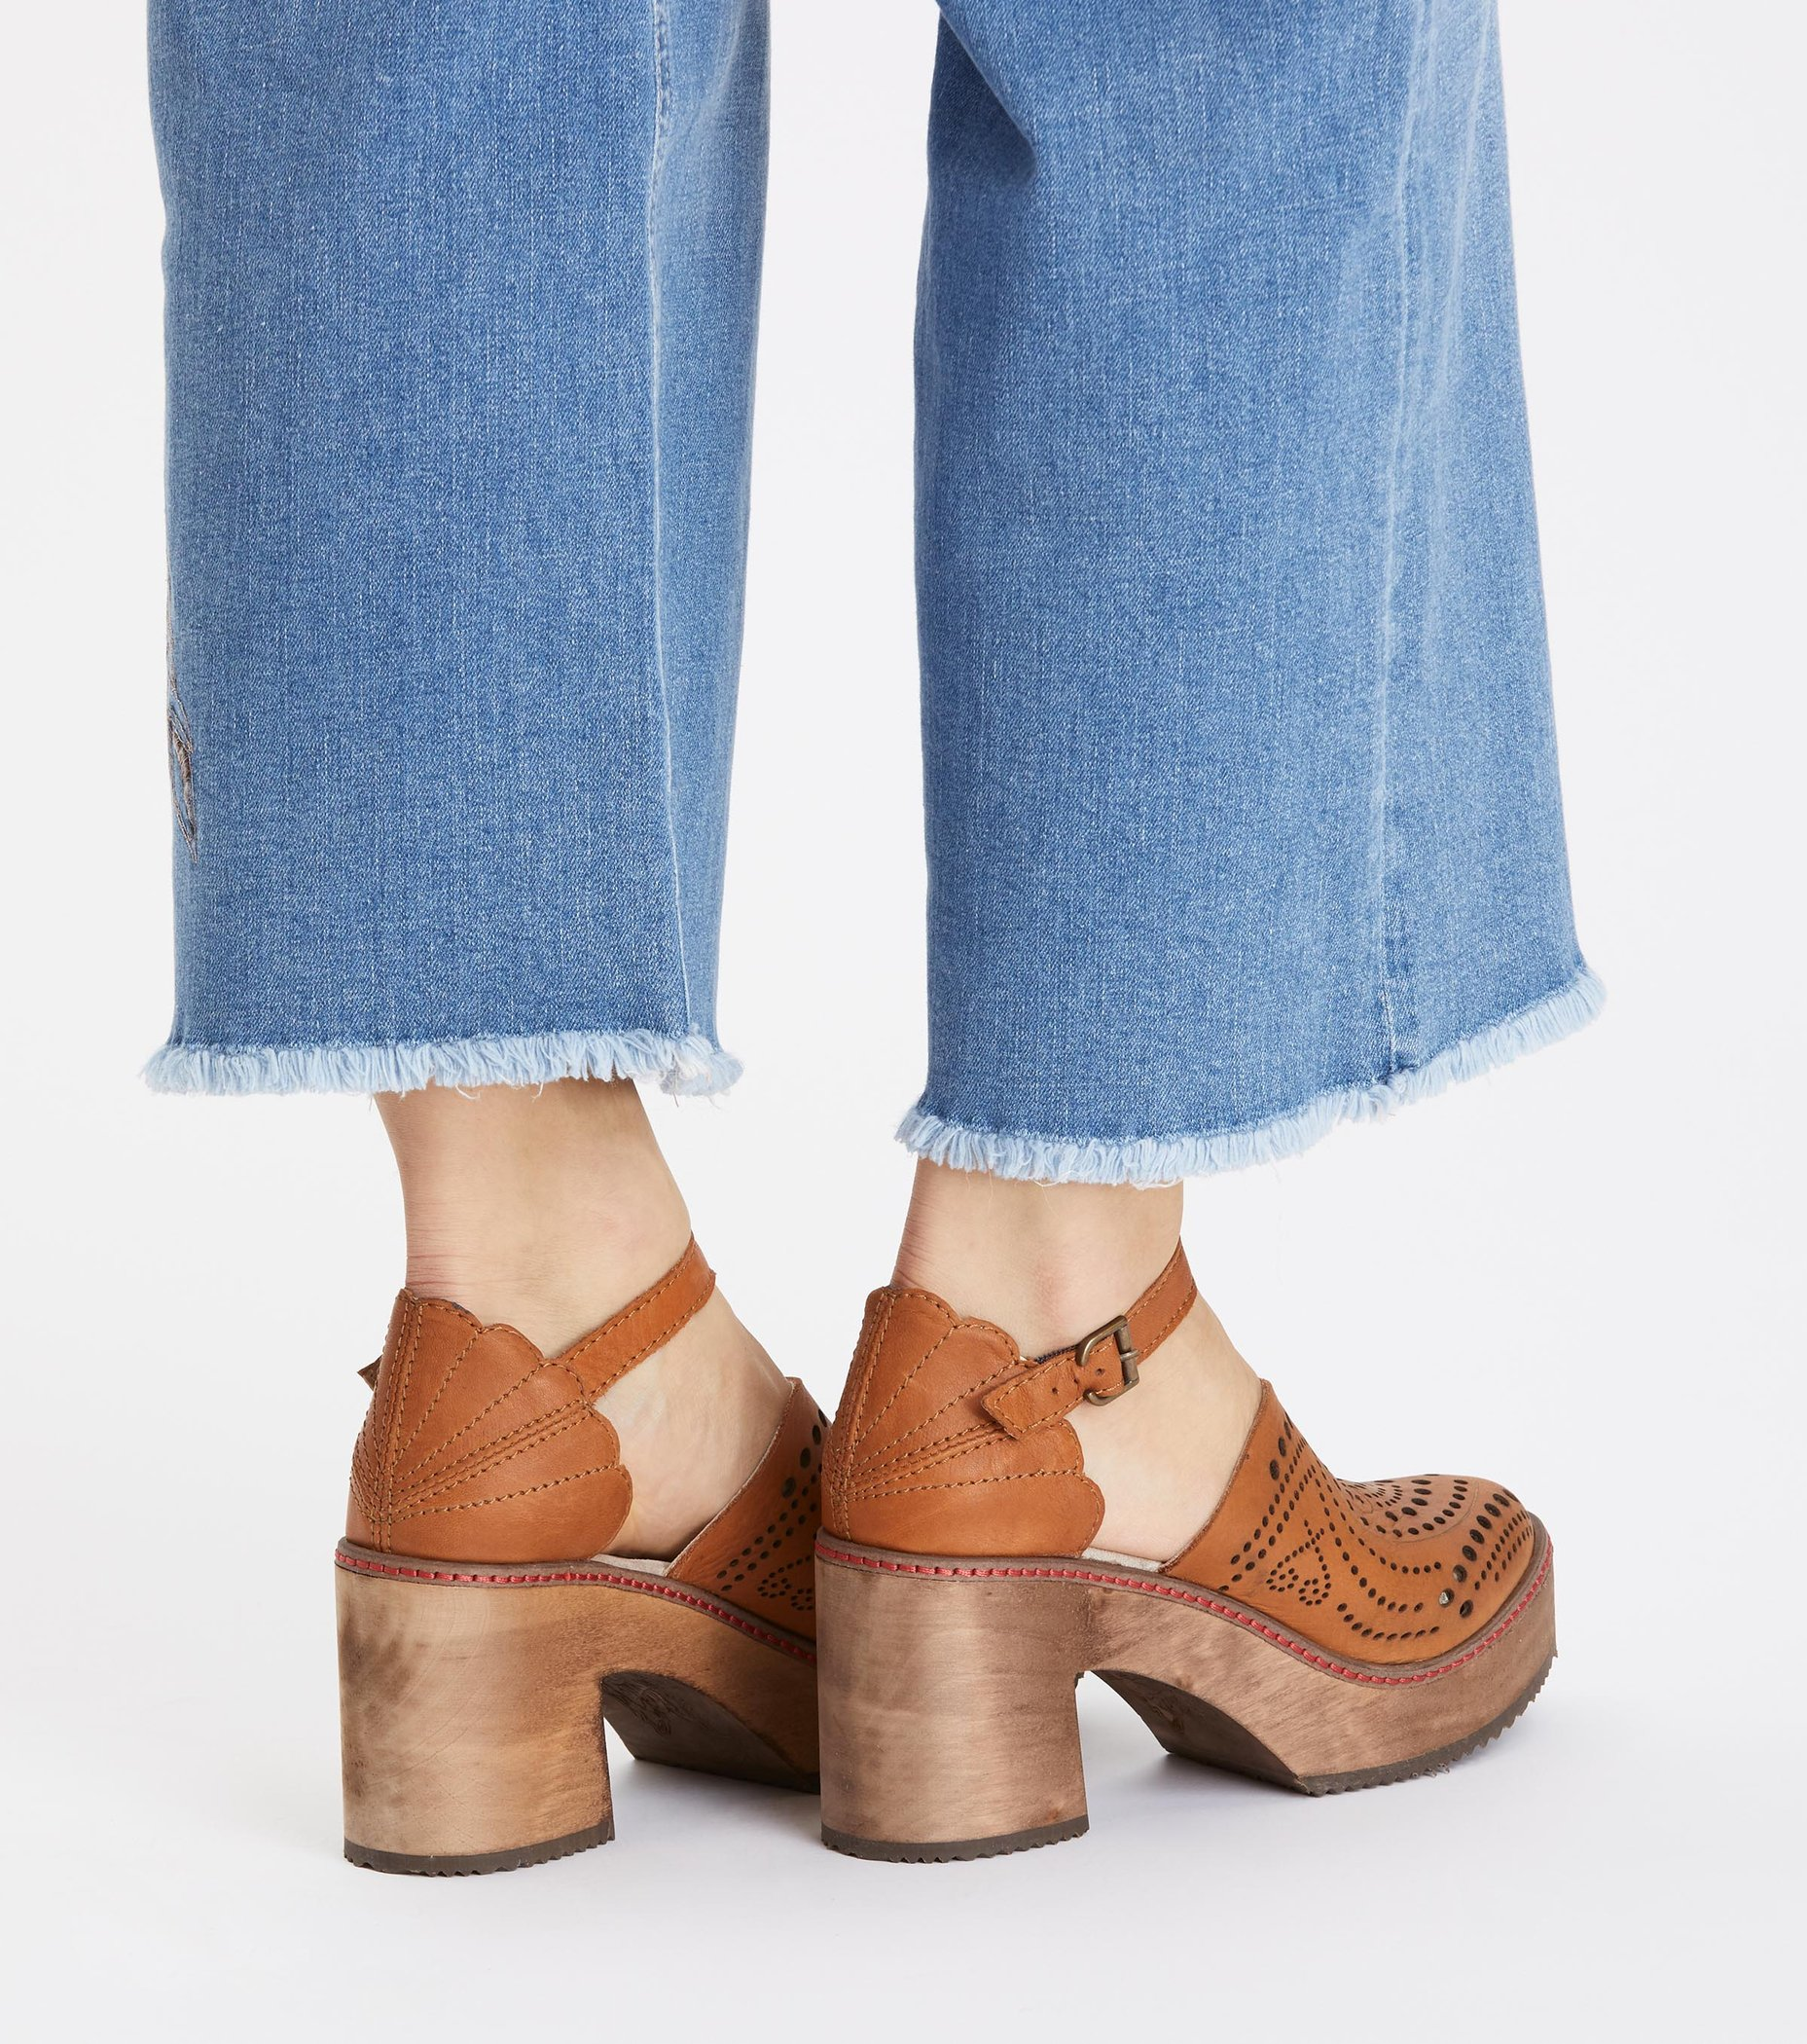 Wild at heart clogs